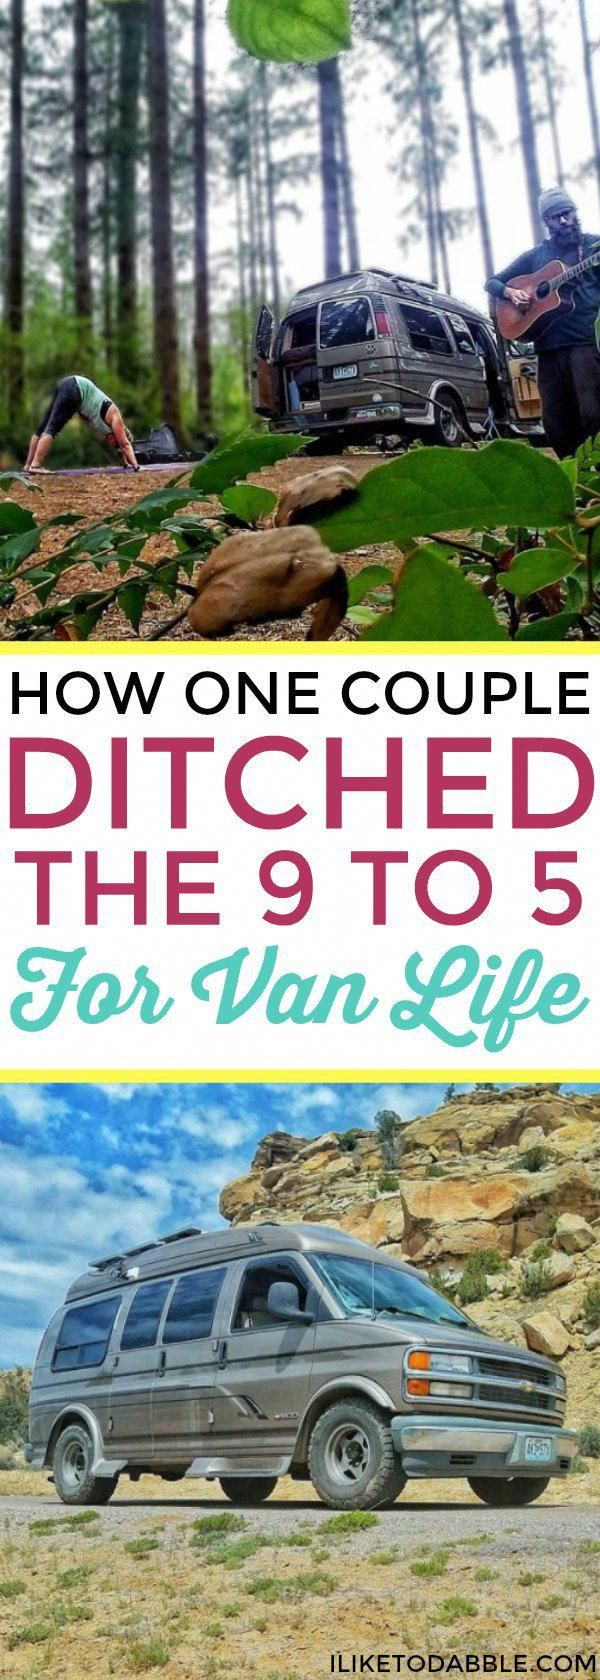 How one couple ditched the 9 to 5 for van life. Van life. Travel full time. Van …